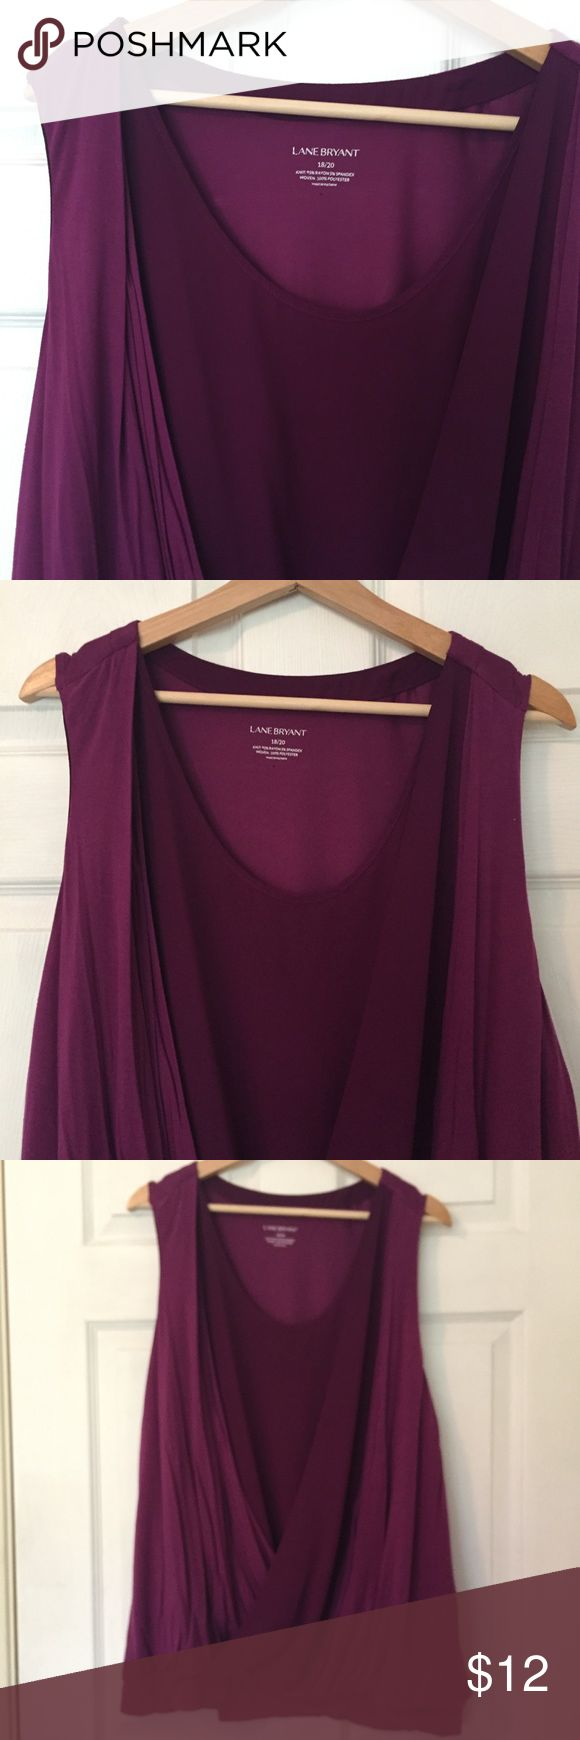 Lane Bryant Top Lane Bryant Top. Good, Clean Lightly Loved Condition. Lovely Rich Purple/Plum Blousy Drape. Soft Jersey with Inner Chiffon Panel Accent. So Flattering & Pretty! Lane Bryant Tops